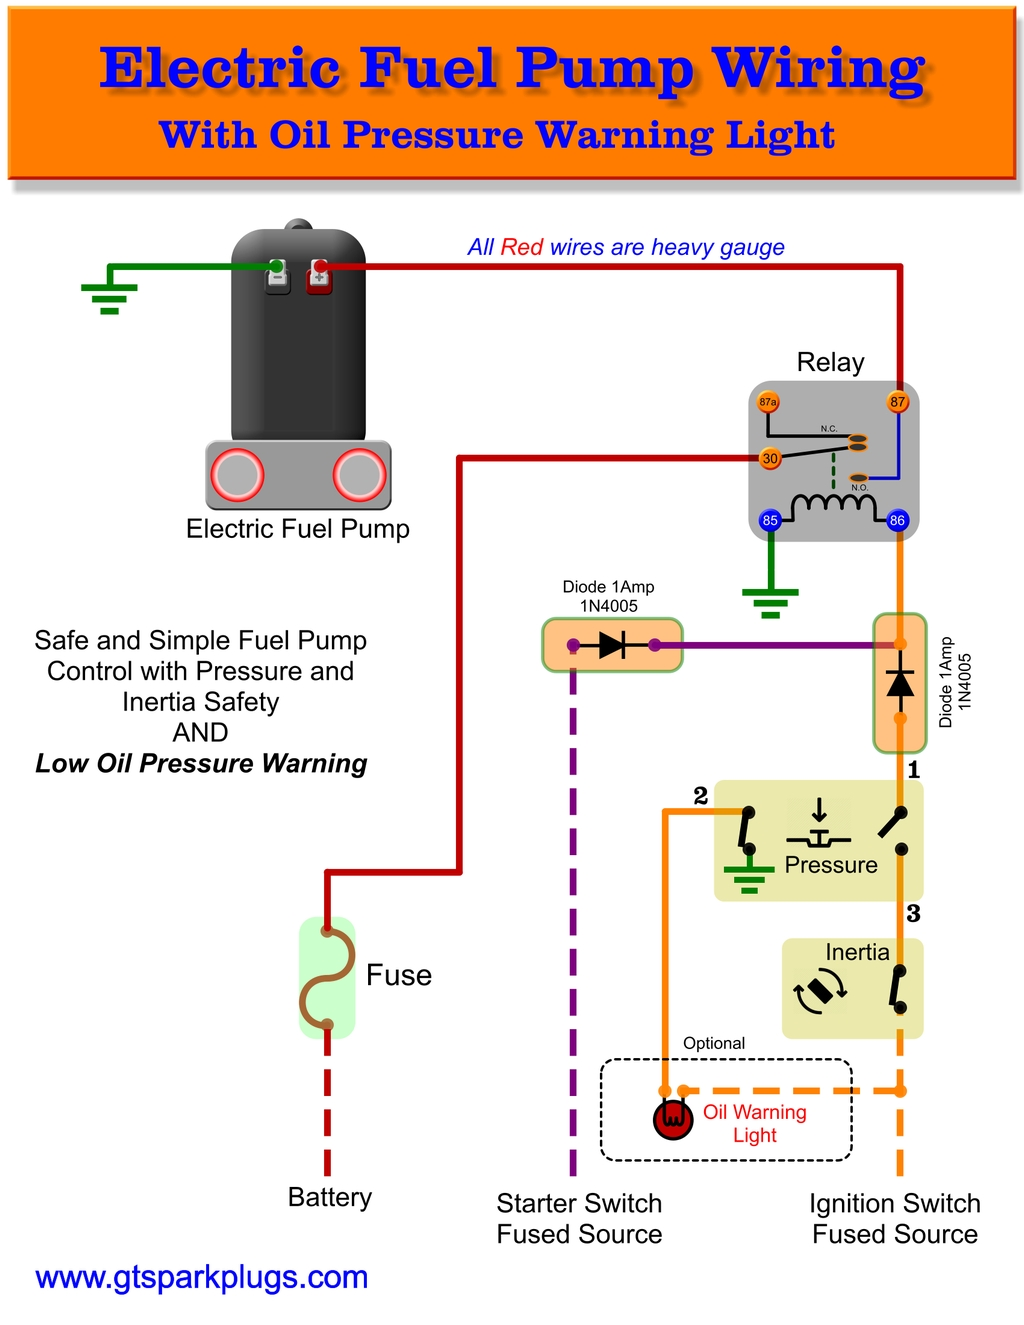 Electric Fuel Pump Wiring Diagram Gtsparkplugs Typical Ignition Switch This Is A Simple Guide To Safer For Your Spend Some Time Things Up Right And In The Event Of Problem It Can Save You